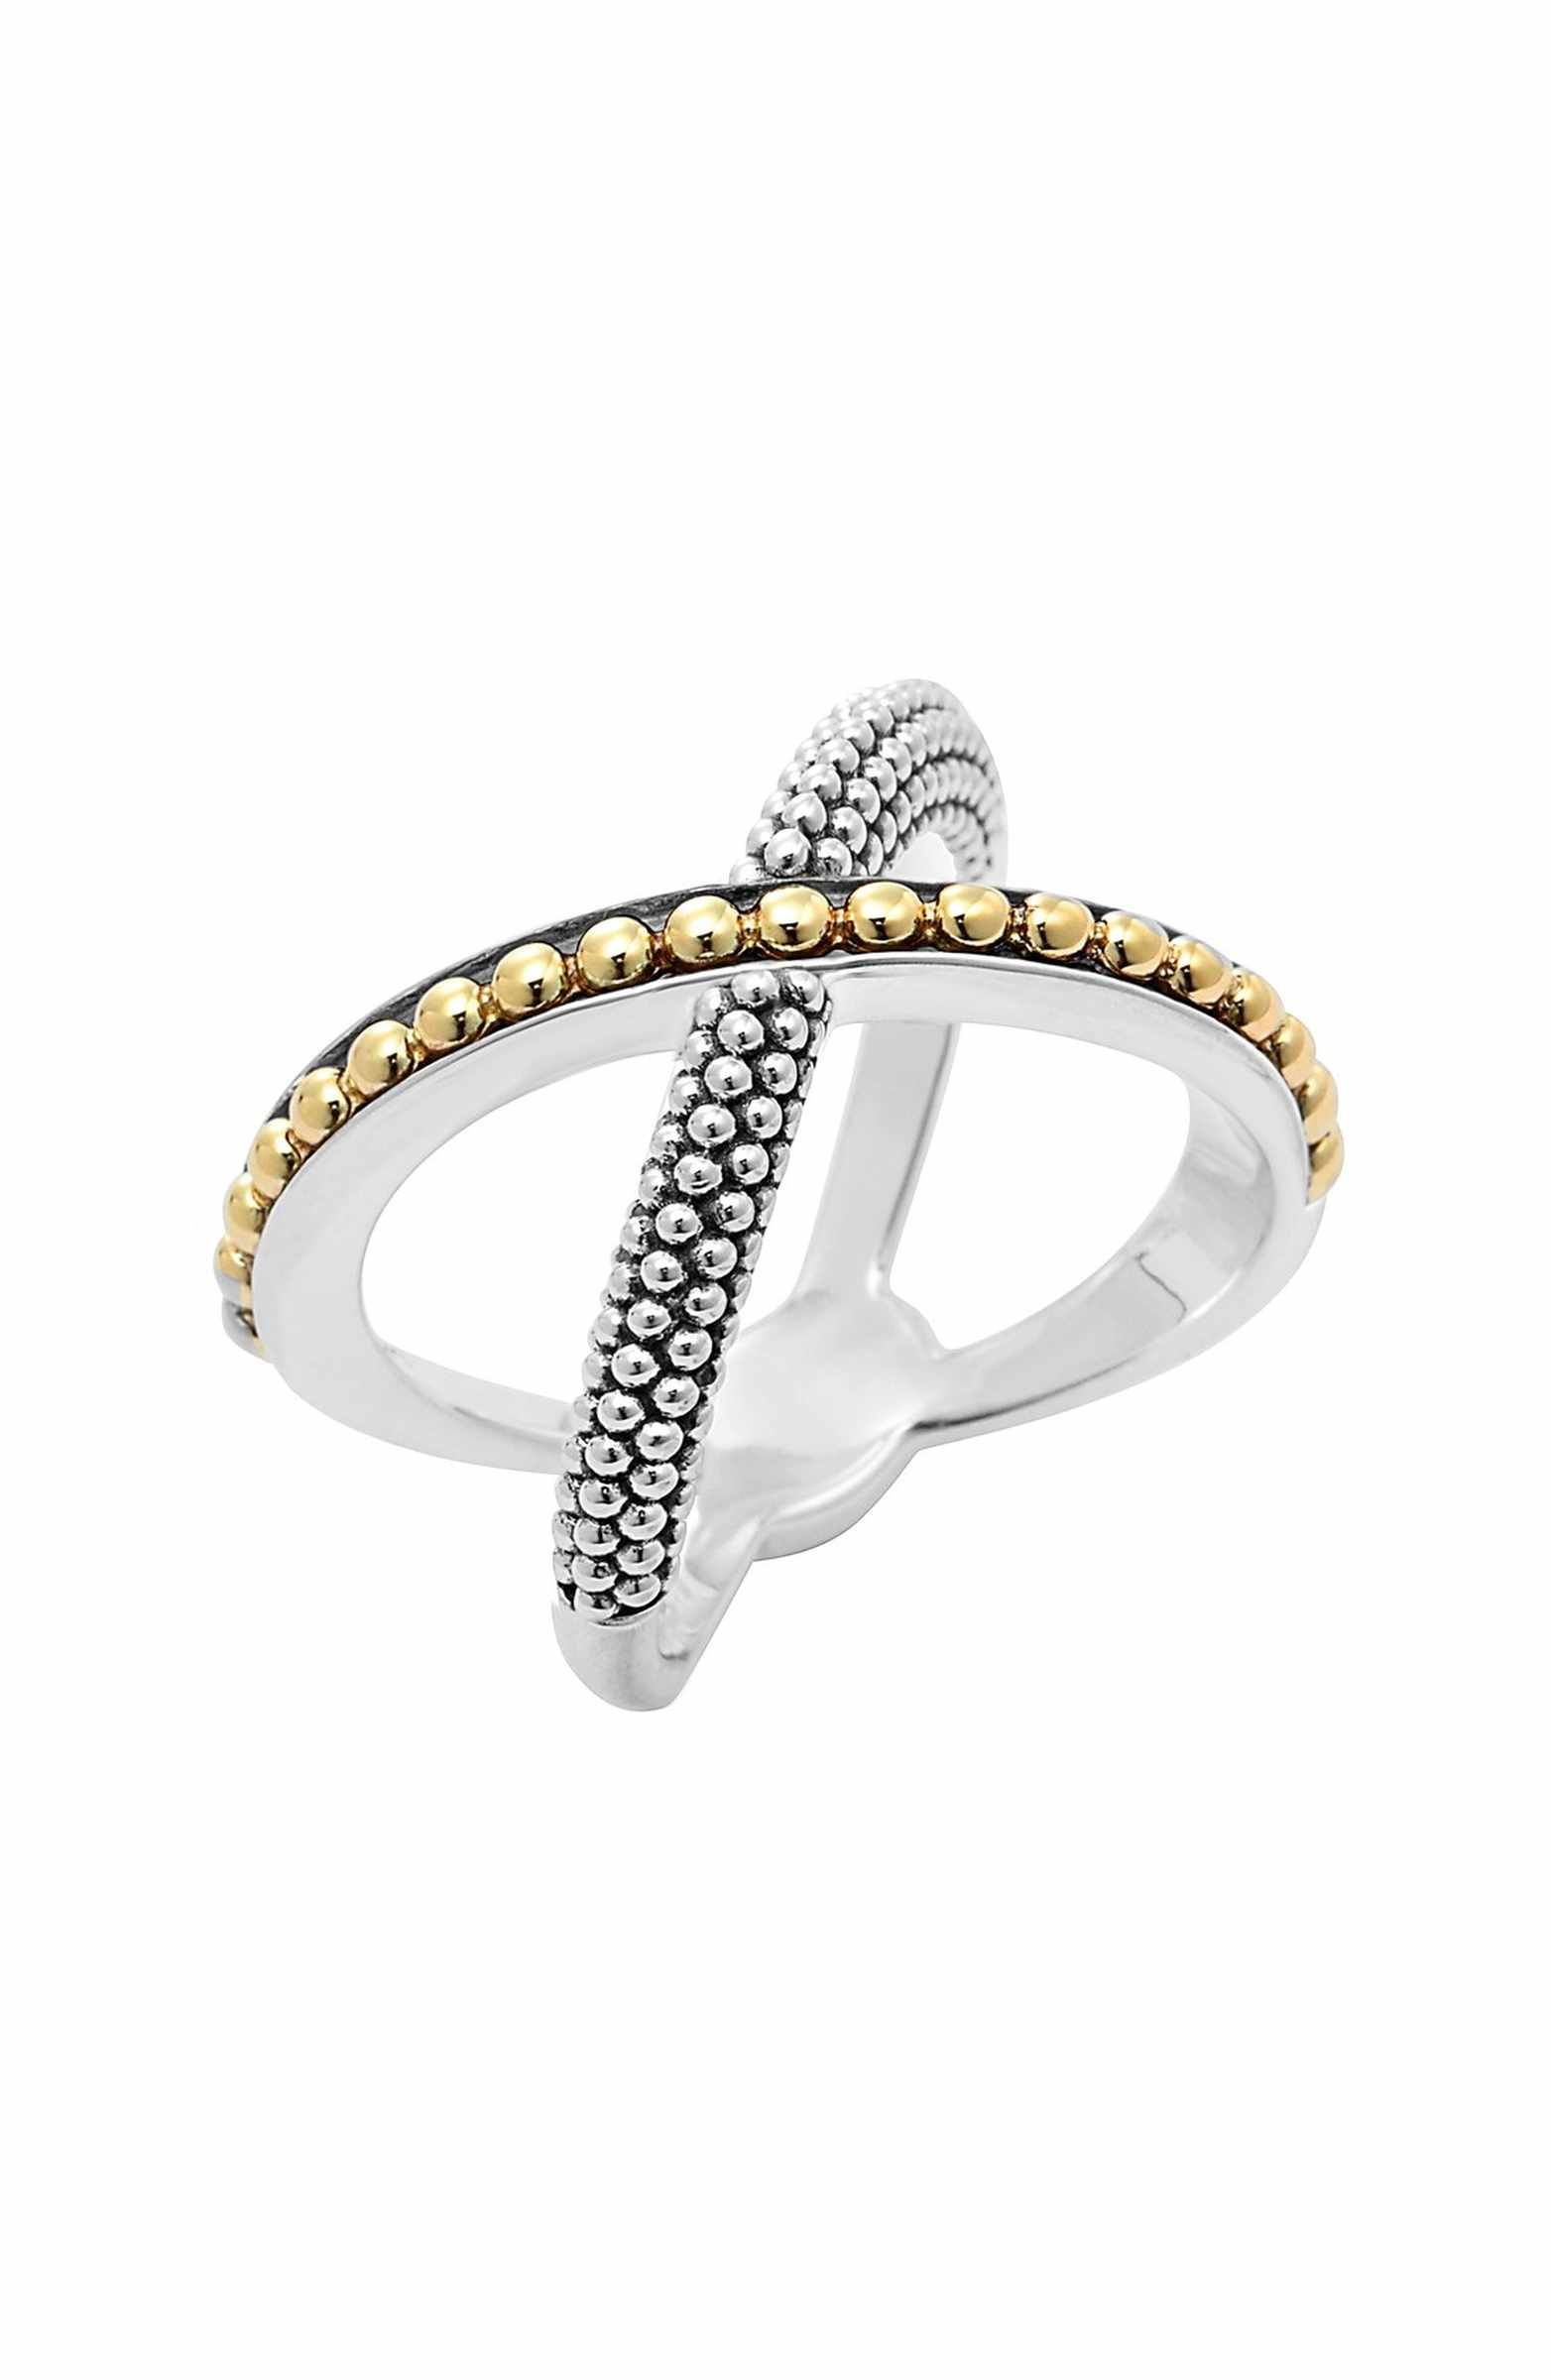 Lagos Sterling Silver & 18k Infinity Crossover Ring ASaFGT